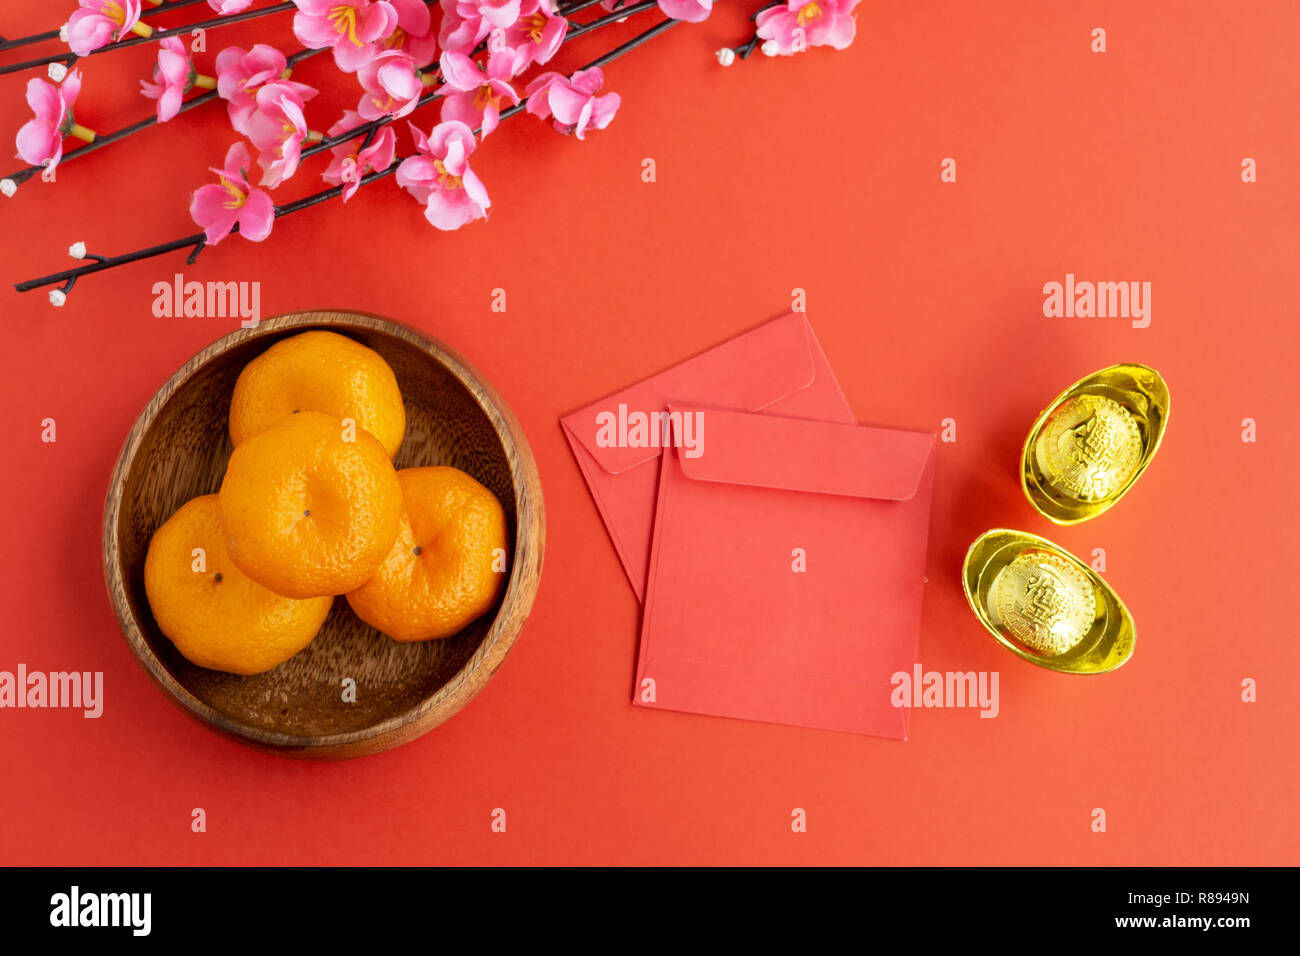 Flat lay Chinese New Year Background - Cherry Blossom, Mandarin Orange, Red Envelop and Golden Ingots on red background. Stock Photo